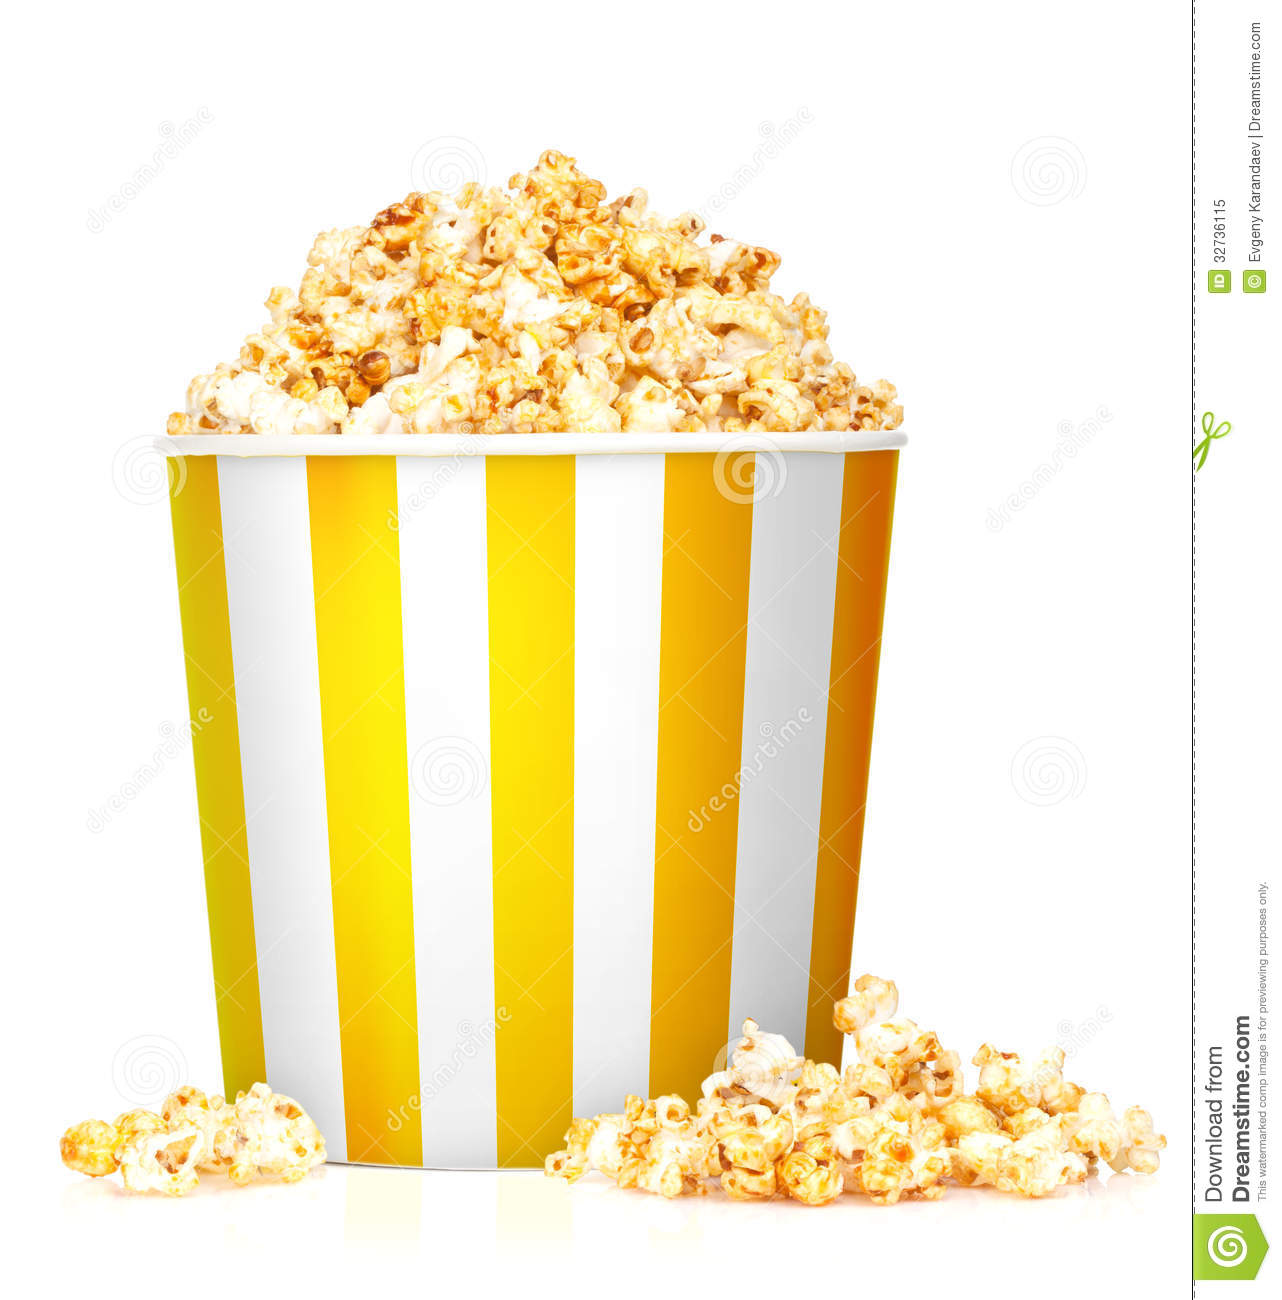 Popcorn Box Royalty Free Stock Photo - Image: 32736115